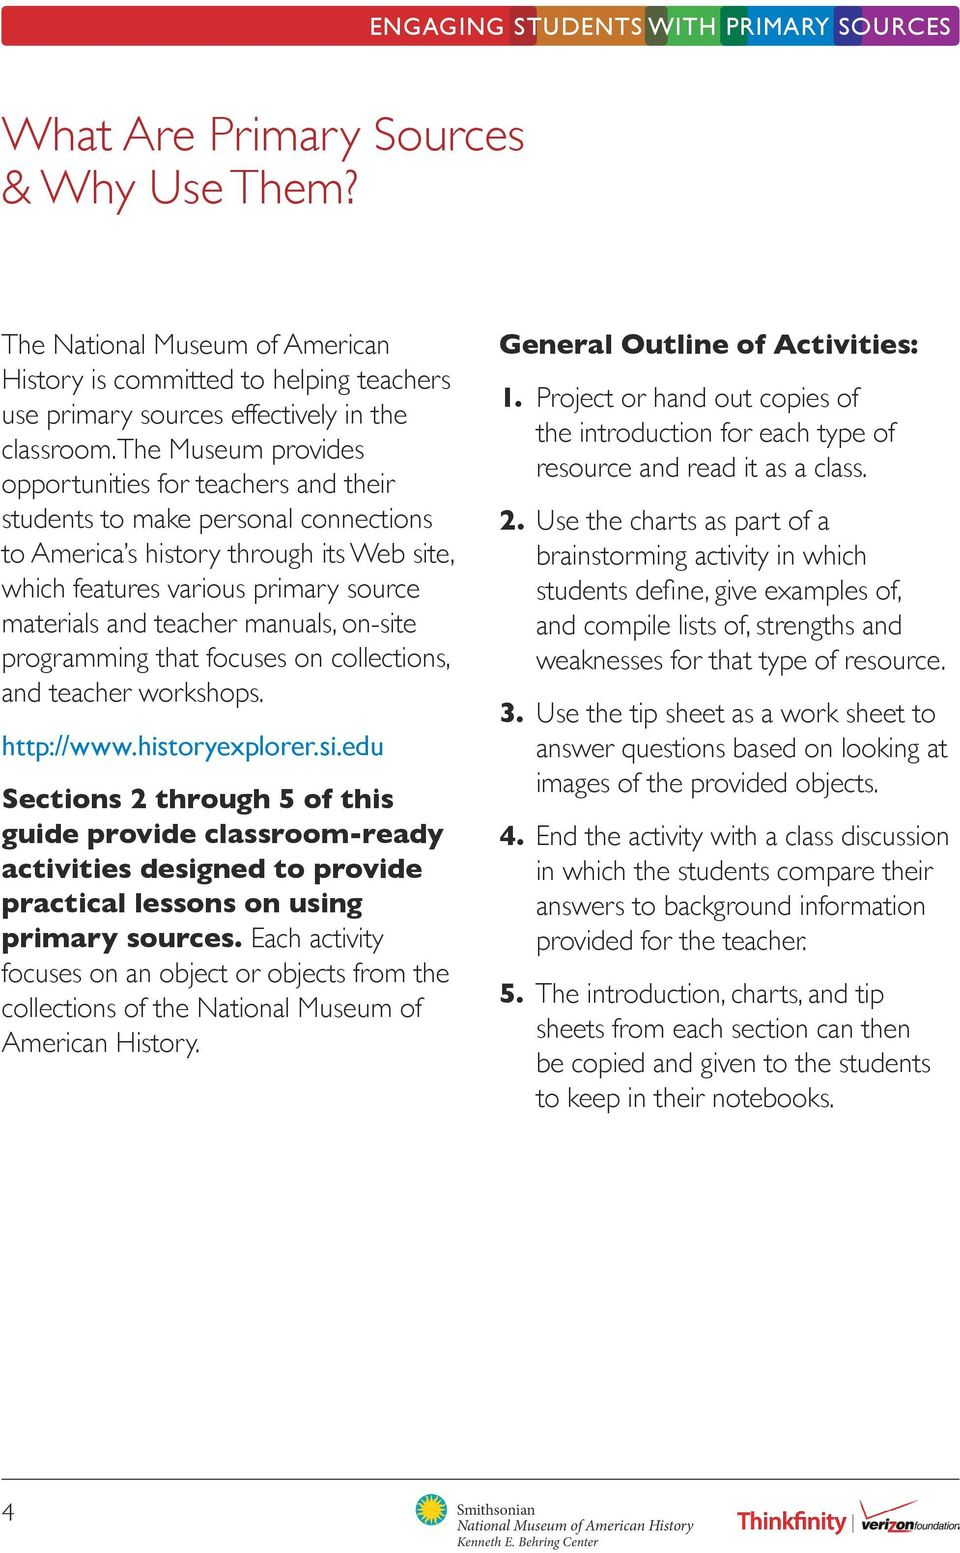 manuals, on-site programming that focuses on collections, and teacher workshops. http://www.historyexplorer.si.edu Sections 2 through 5 of this guide provide classroom-ready activities designed to provide practical lessons on using primary sources.